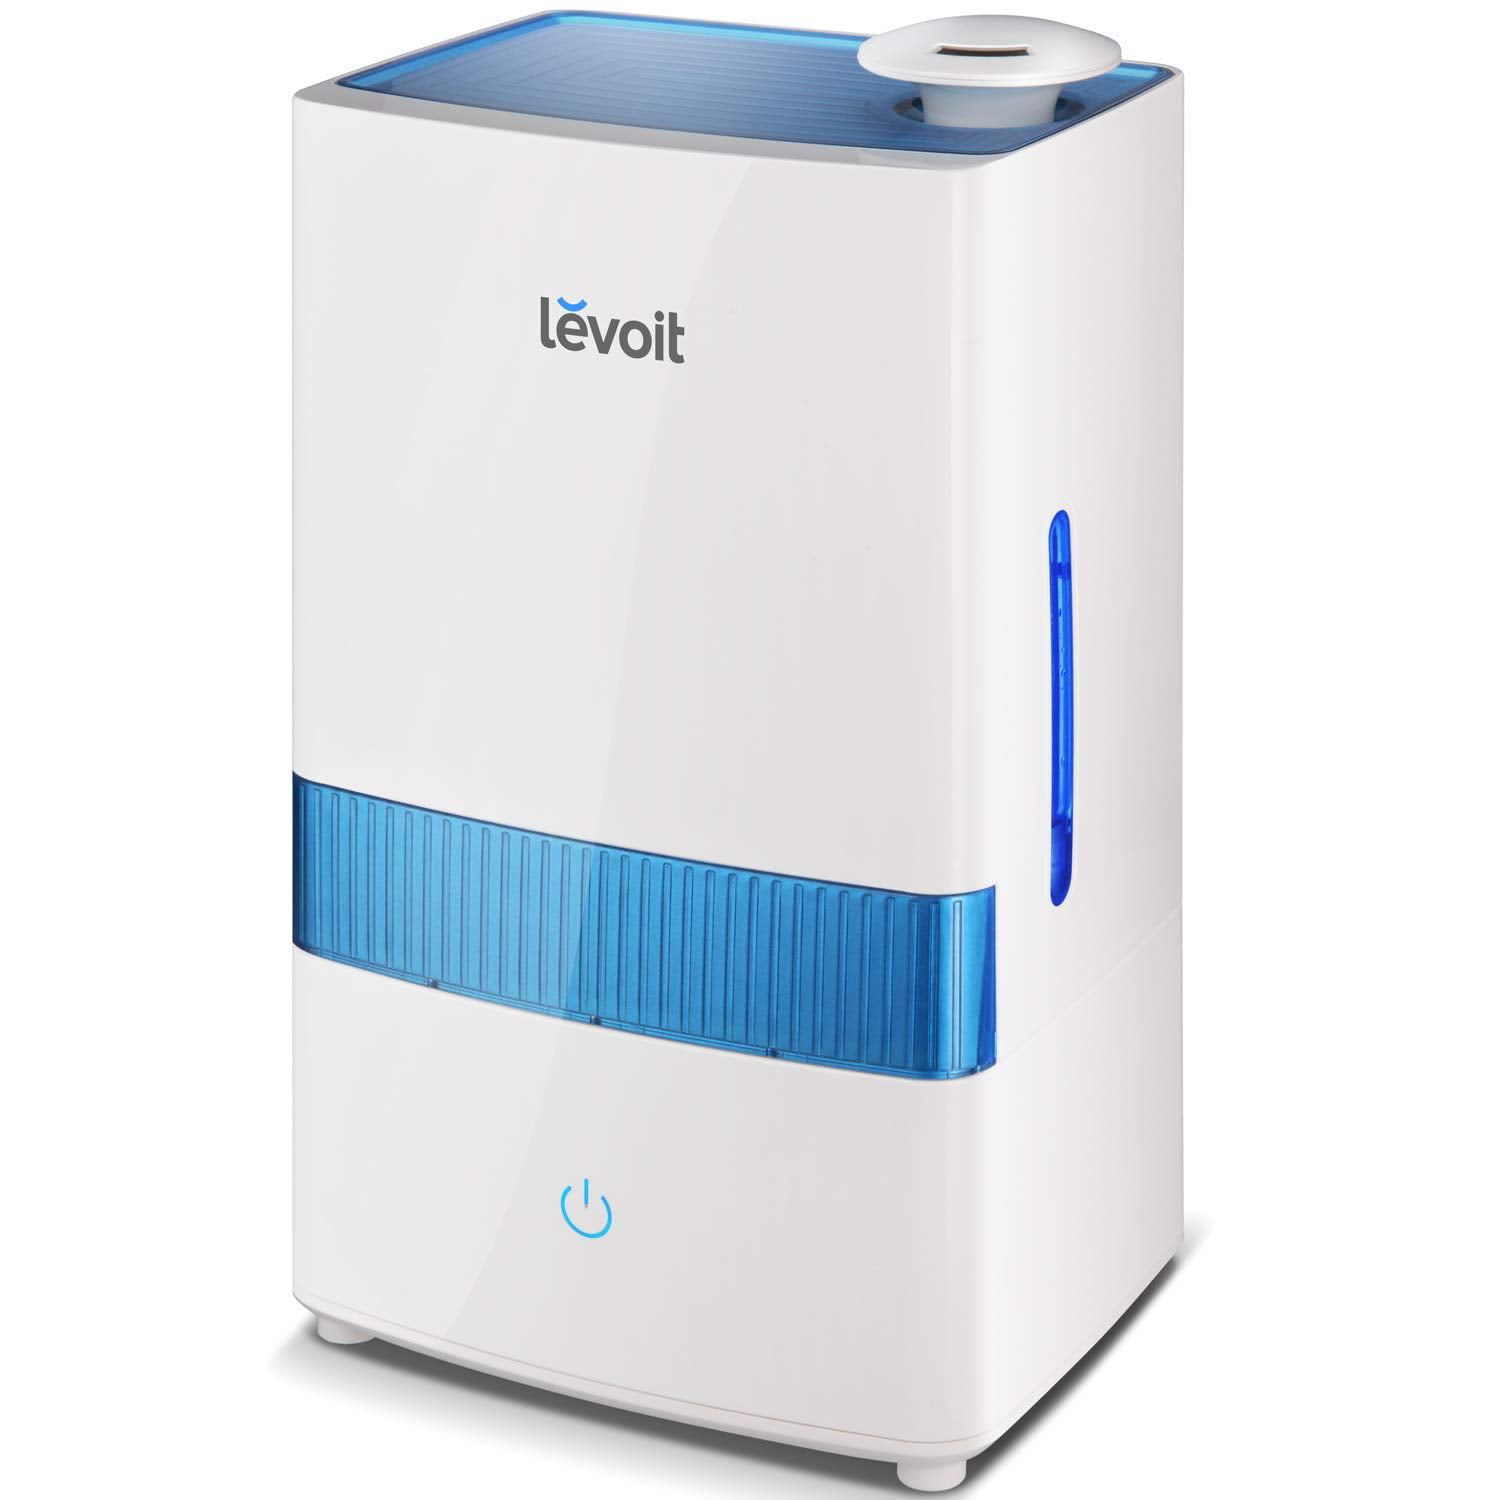 LEVOIT Cool Mist Humidifiers, 4.5L Ultrasonic Humidifier for Bedroom and Babies, Large-Capacity Vaporizer for... by Levoit